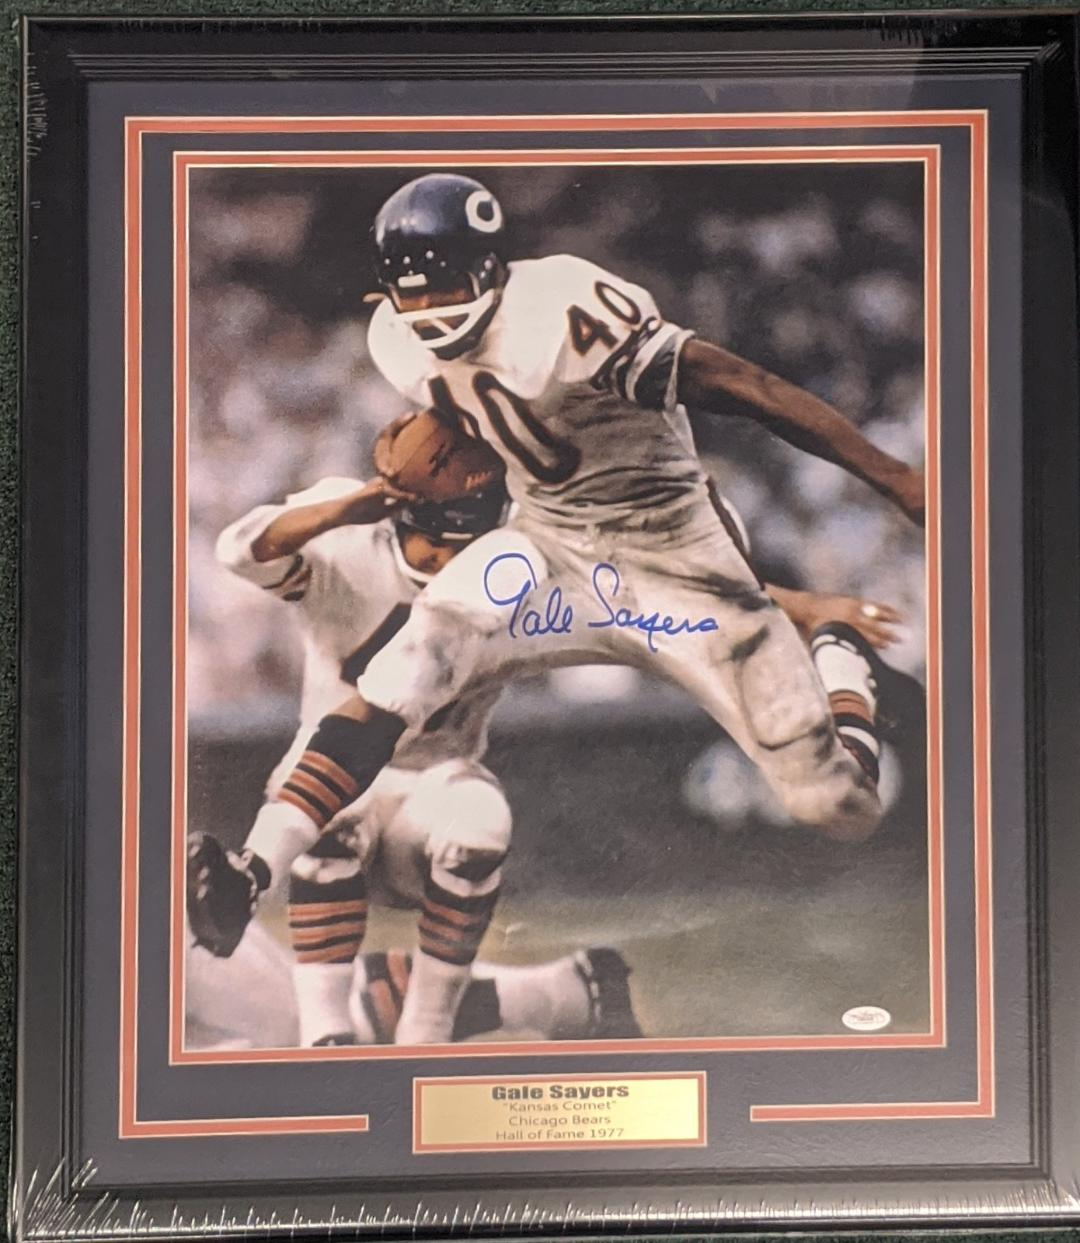 GALE SAYERS SIGNED 16X20